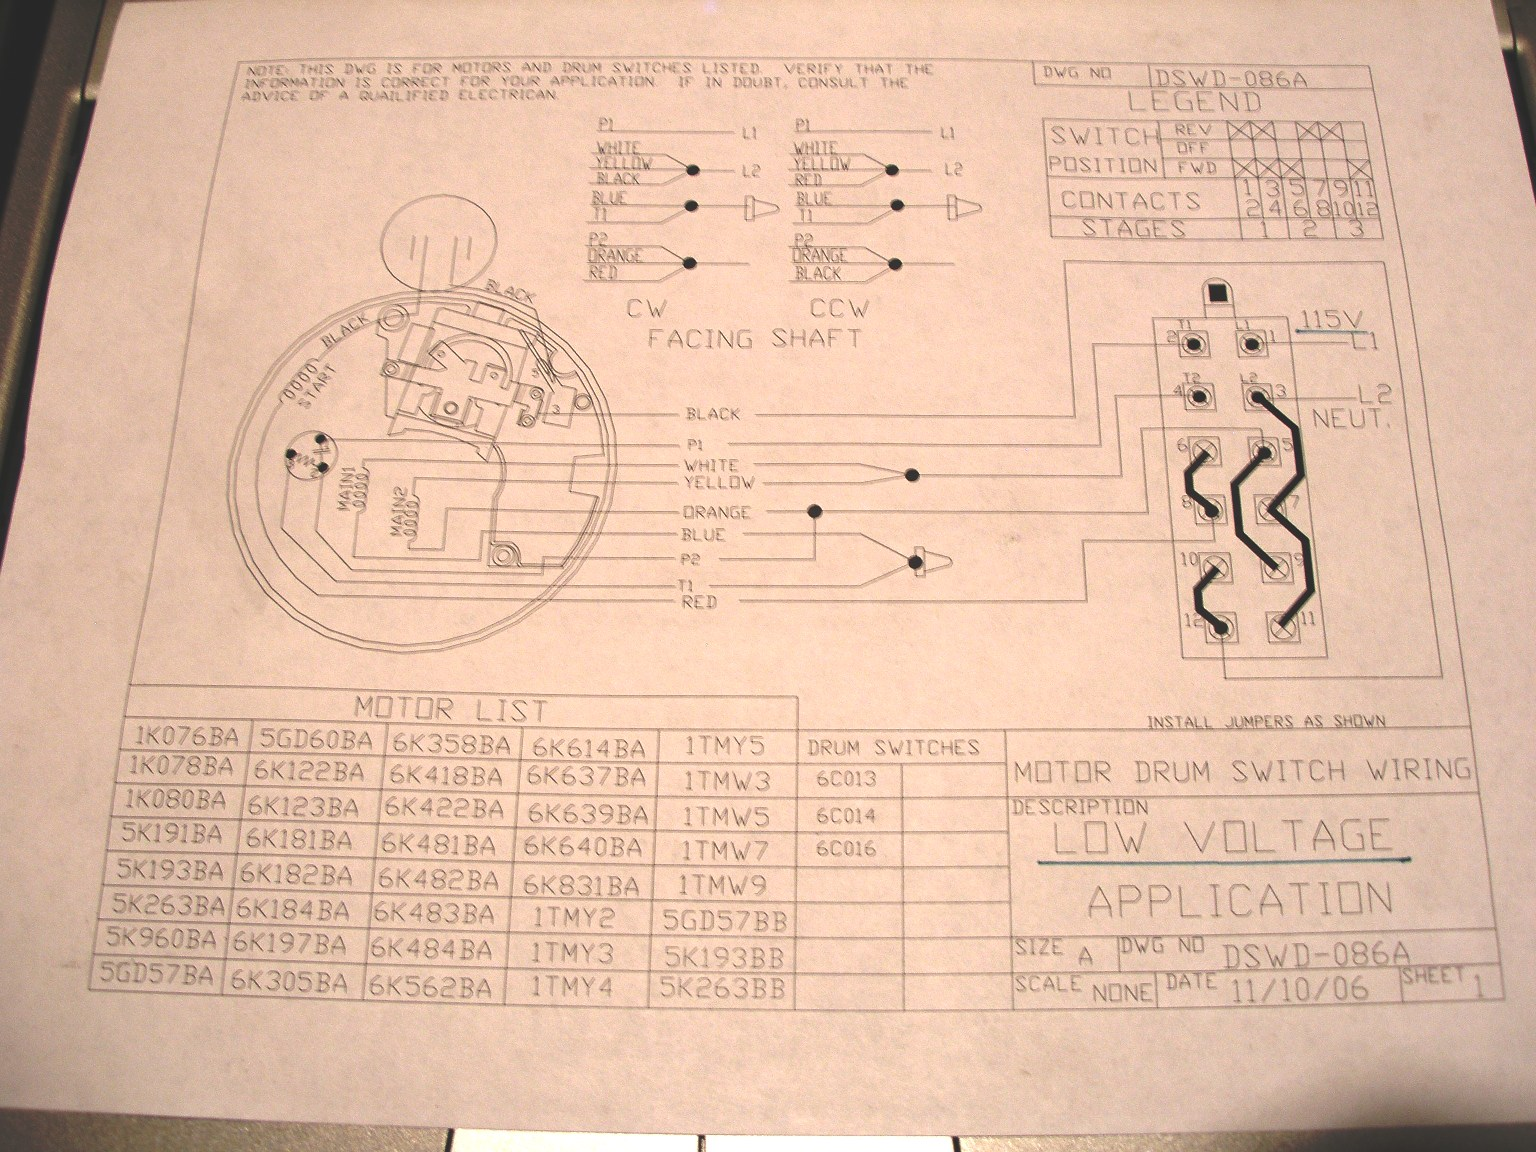 leeson 3 hp motor wiring diagram yamaha fzr 600 the on my boat lift quit. it was a ao smith motor, open